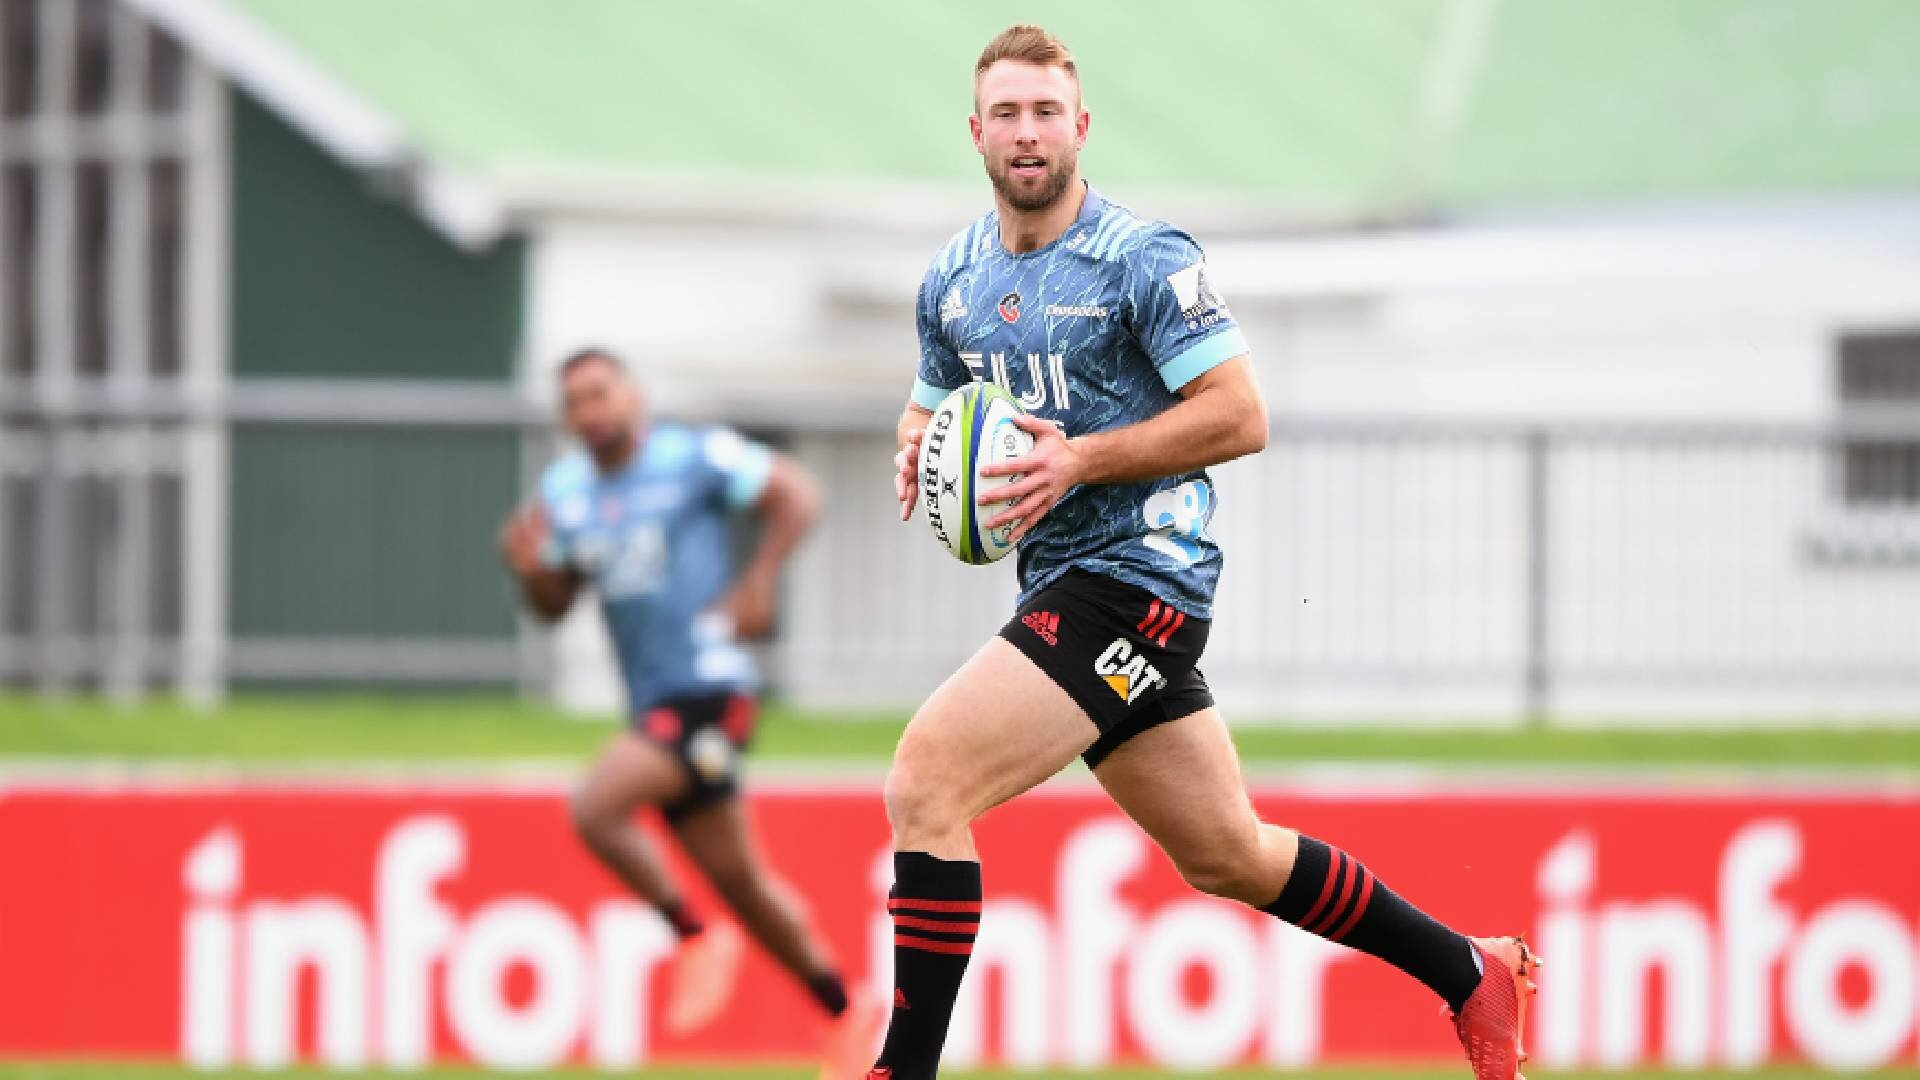 Super Rugby Aotearoa: Crusaders welcome back key players for Highlanders clash